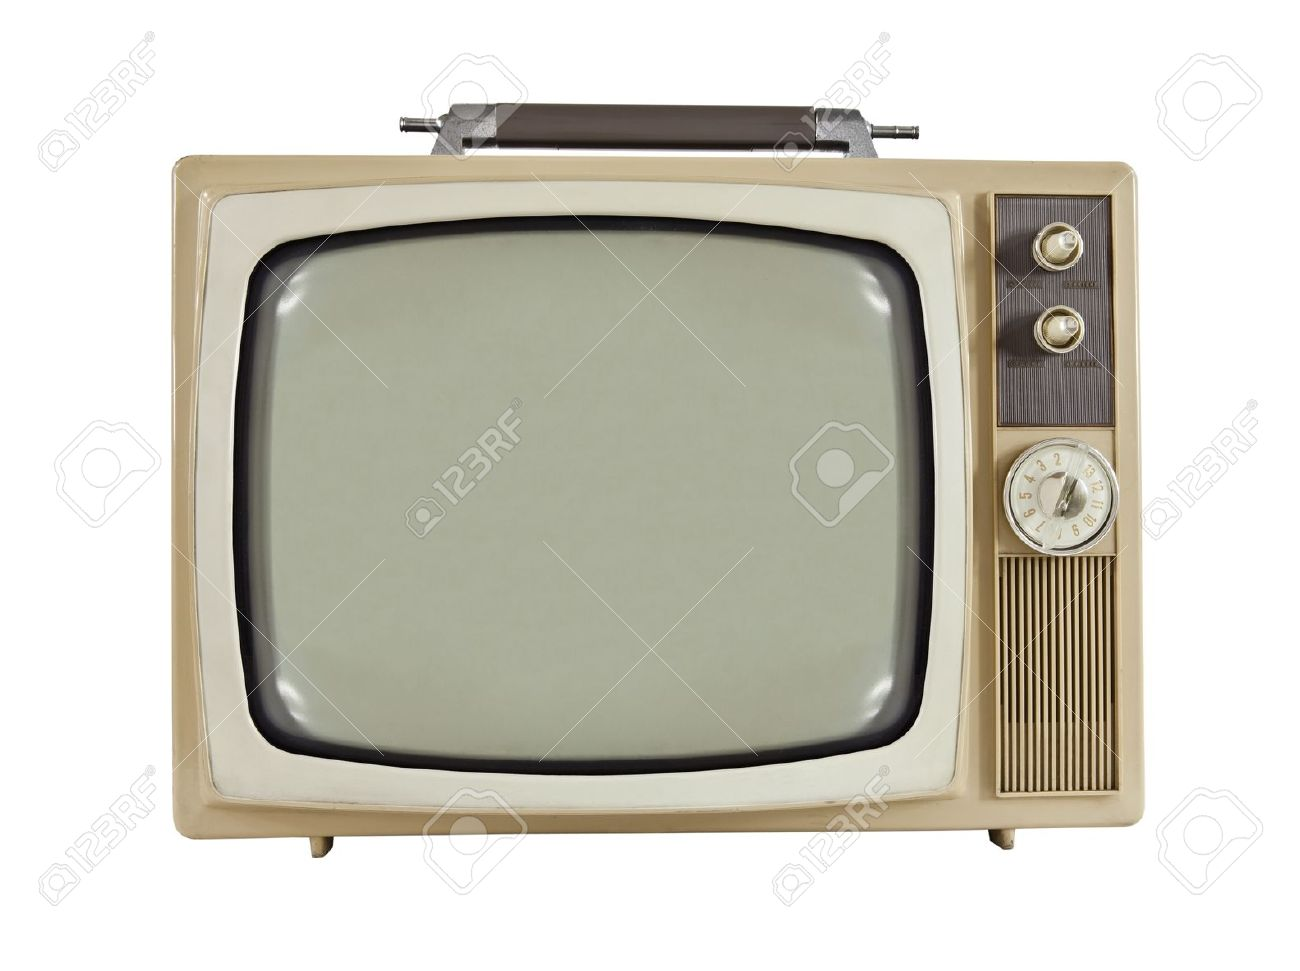 Vintage 1960's portable television isolated on white